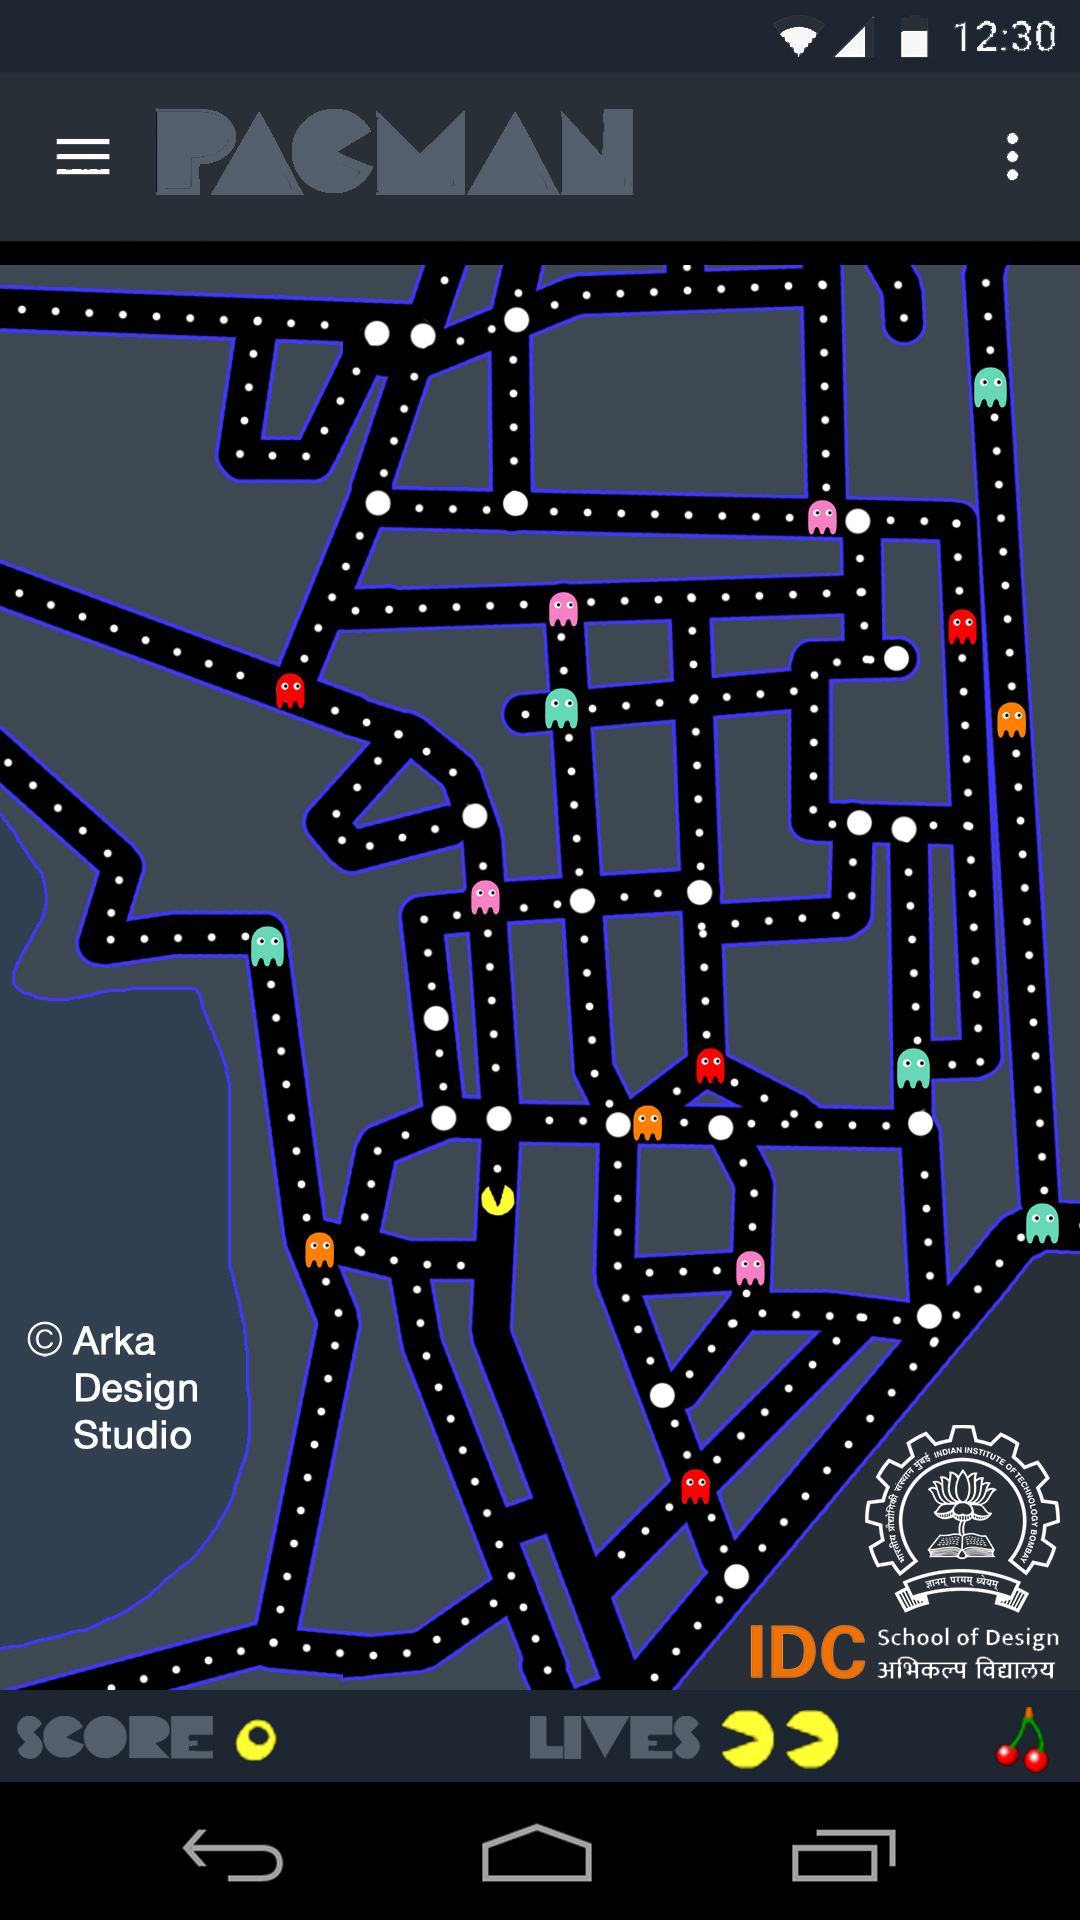 IIT ay Campus Map Pacman on Behance Iit Campus Map on ic campus map, icar campus map, google campus map, samsung campus map, harvard campus map, icc campus map, intel campus map, nic campus map, cabrillo high school campus map, main campus map, engineering campus map, microsoft campus map, jnu campus map, maine campus map, ssc campus map, motorola campus map, umc campus map, yale campus map, itc campus map, mit campus map,